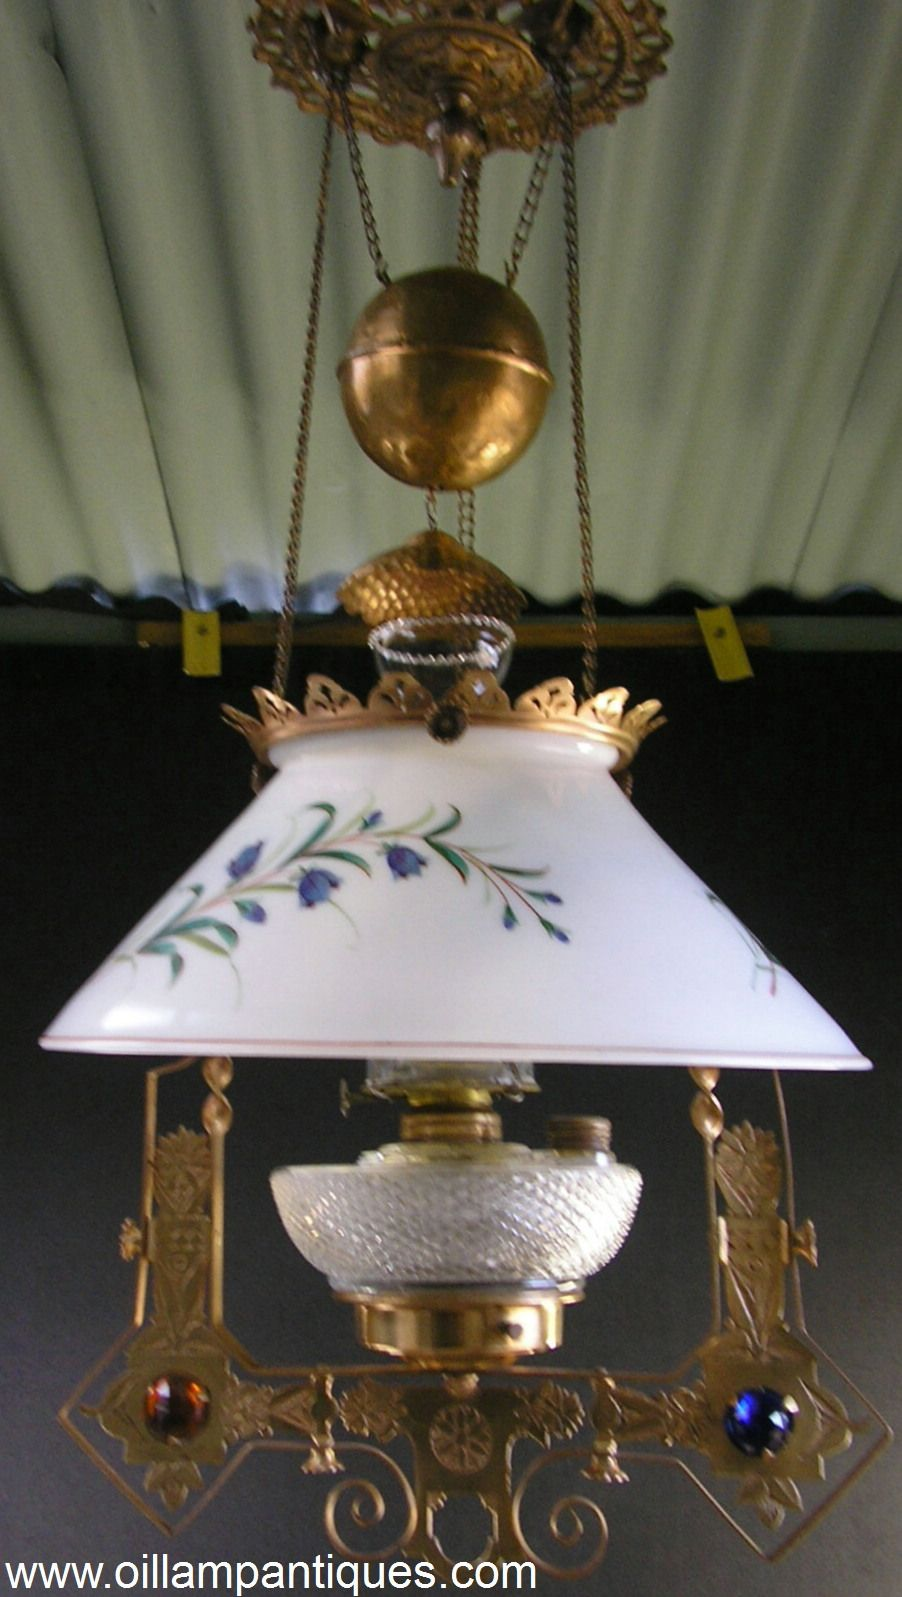 This smaller sized hanging oil lamp was often referred to as a kitchen lamp. Although less ornate than some of the bigger parlour hanging lamps, it is still very elegant and appealing. The hand painted slant sided shade is complimented nicely by the inset jewels and the ornately patterned frame.